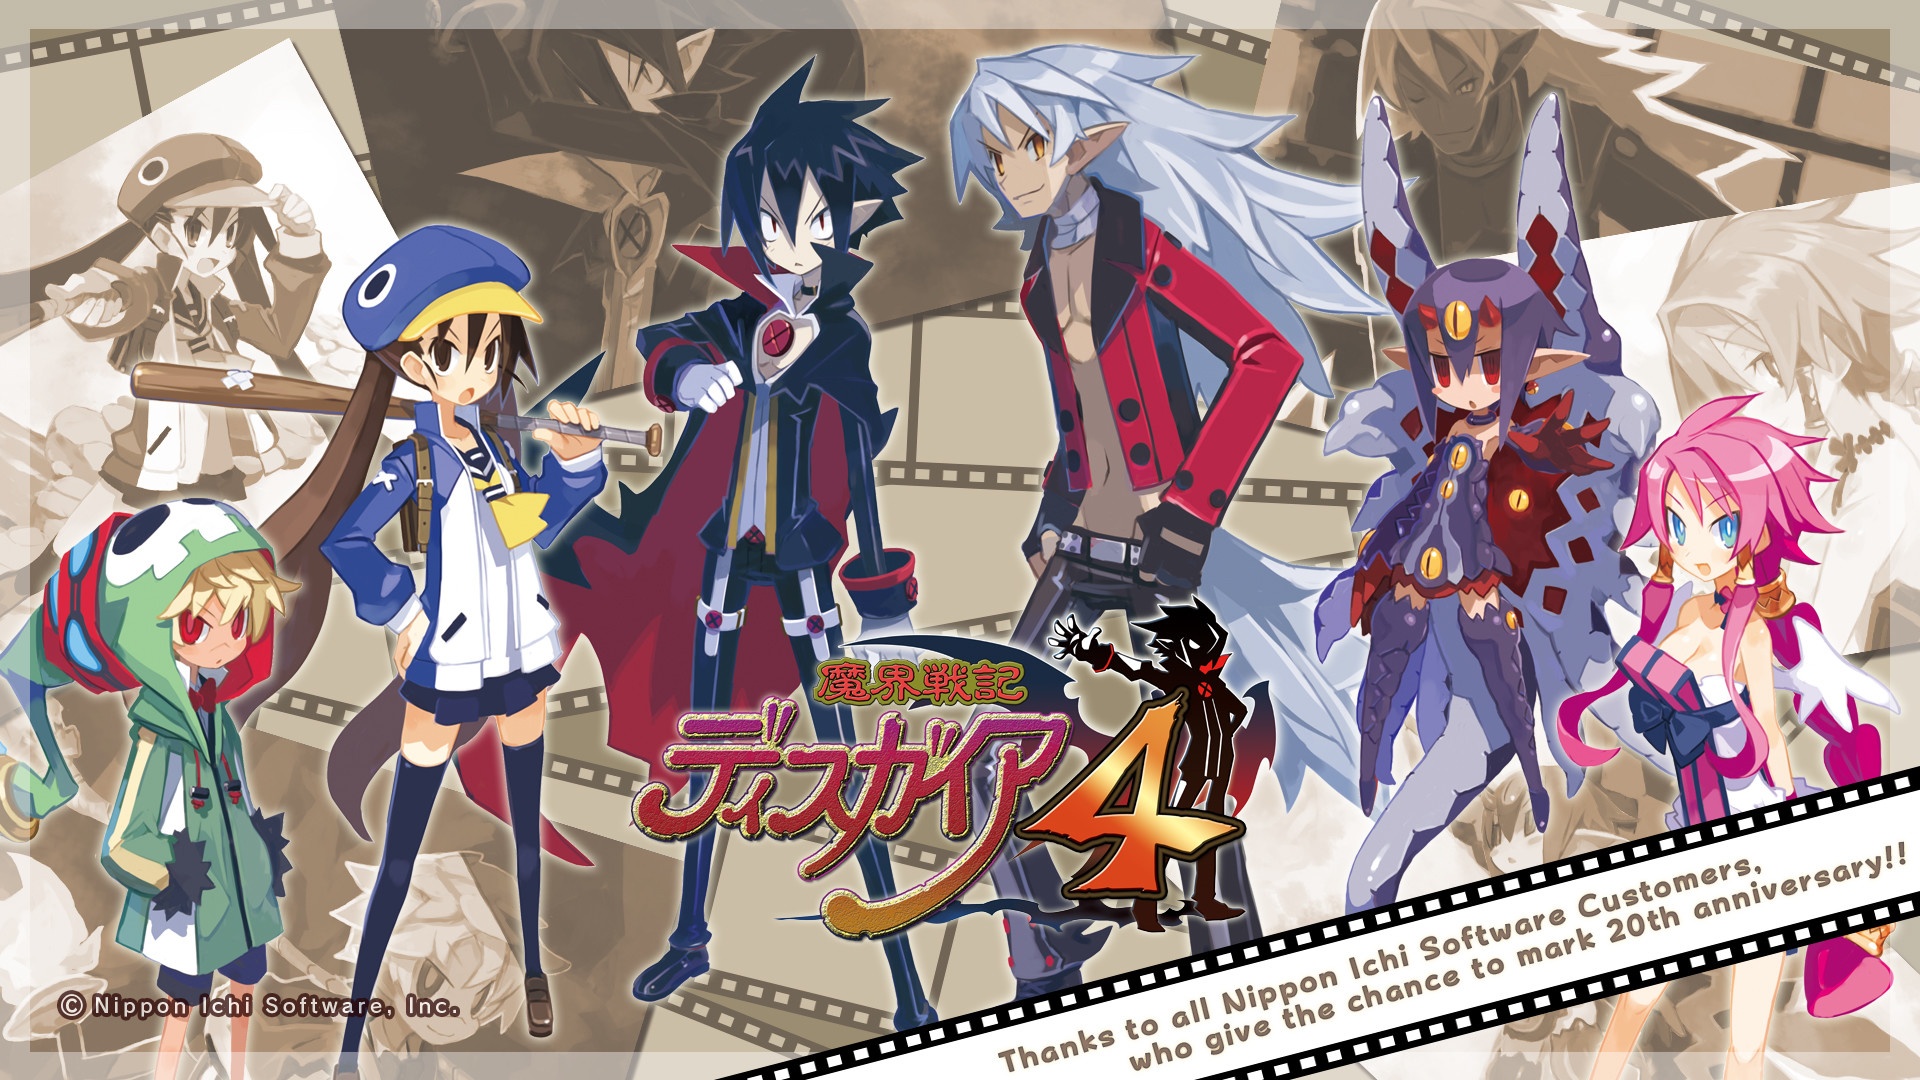 Res: 1920x1080, Computerspiele - Disgaea Wallpaper